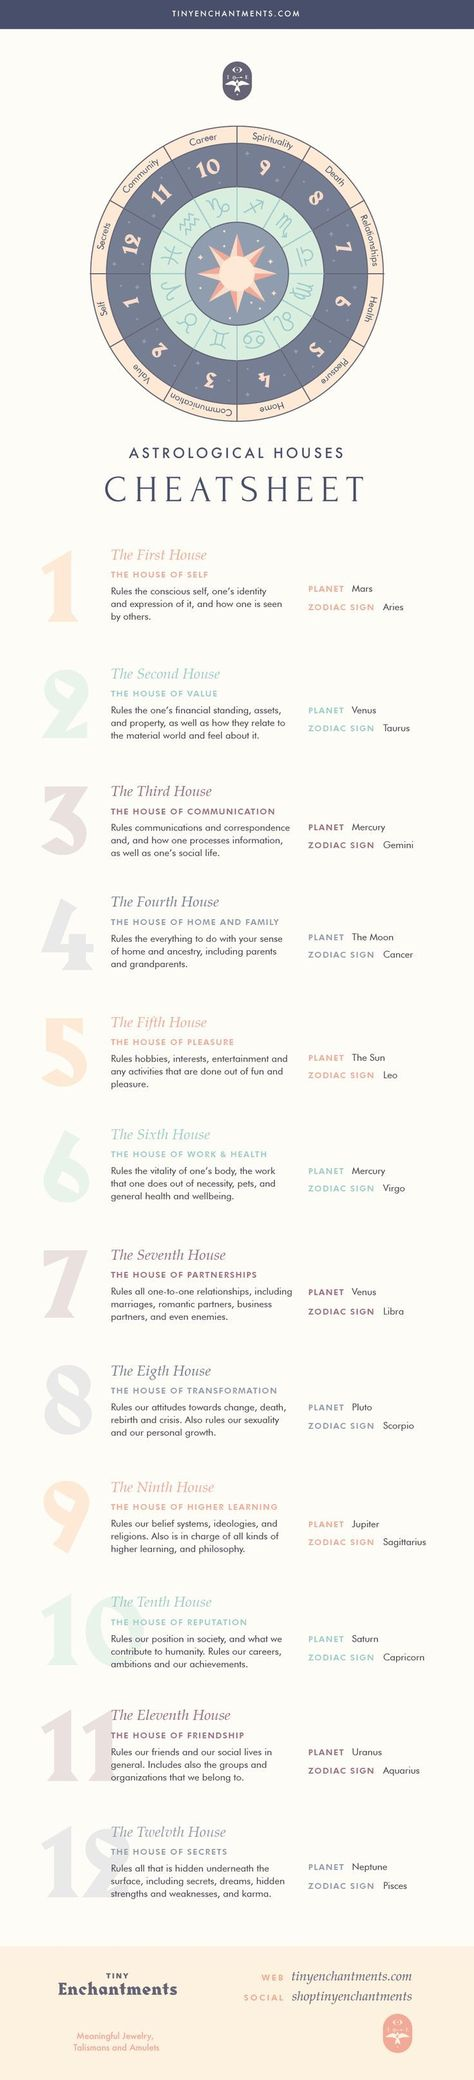 The 12 Houses of Astrology - Learn Astrology and How Houses Affect Your Natal Chart